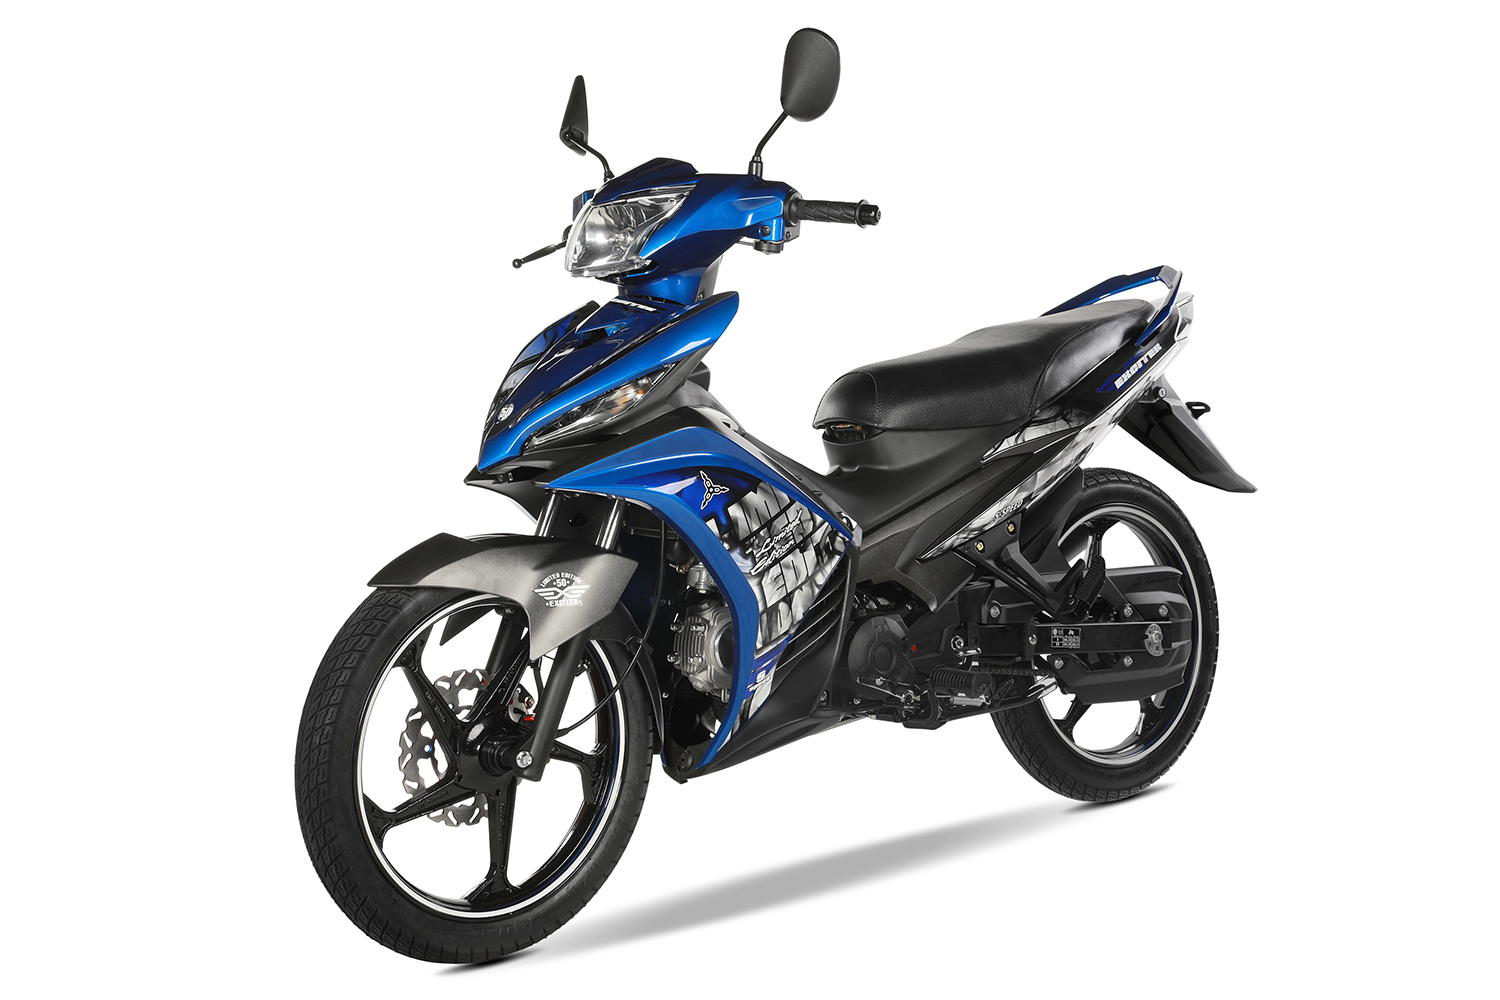 xe-may-exciter-135cc-mau-do-2